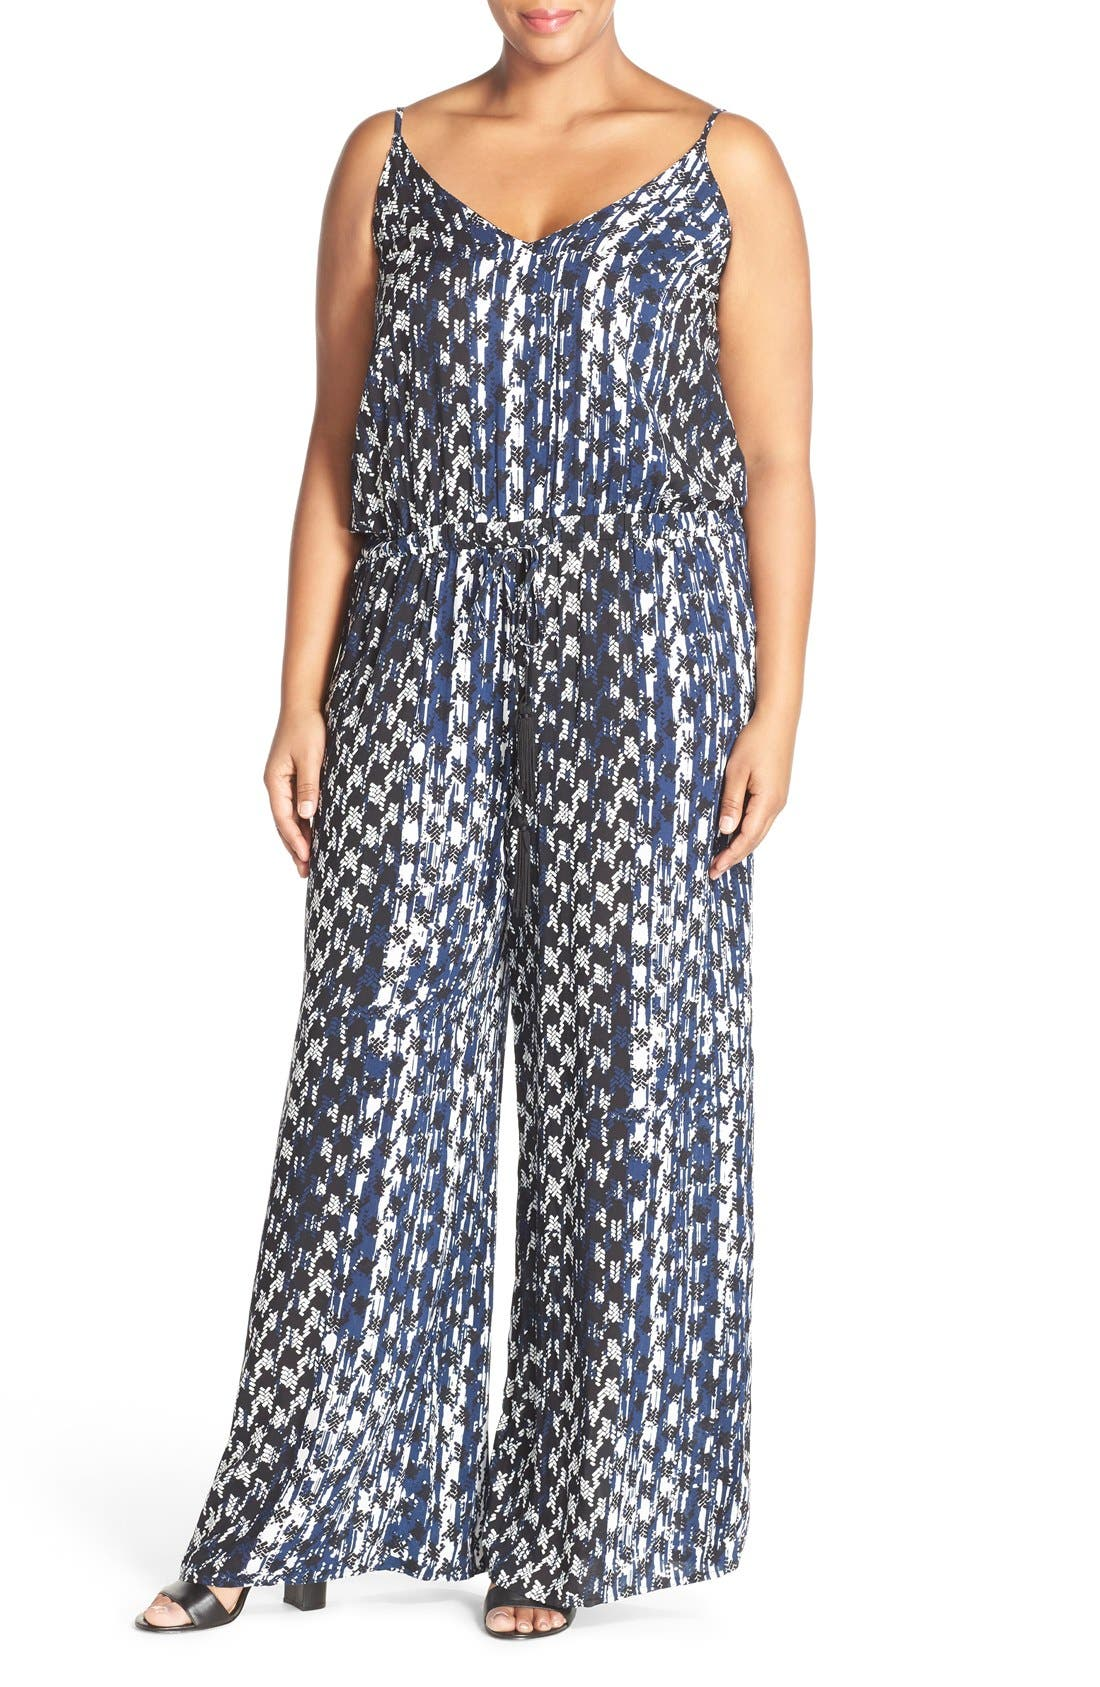 CITY CHIC 'Barbed' Print V-Neck Jumpsuit